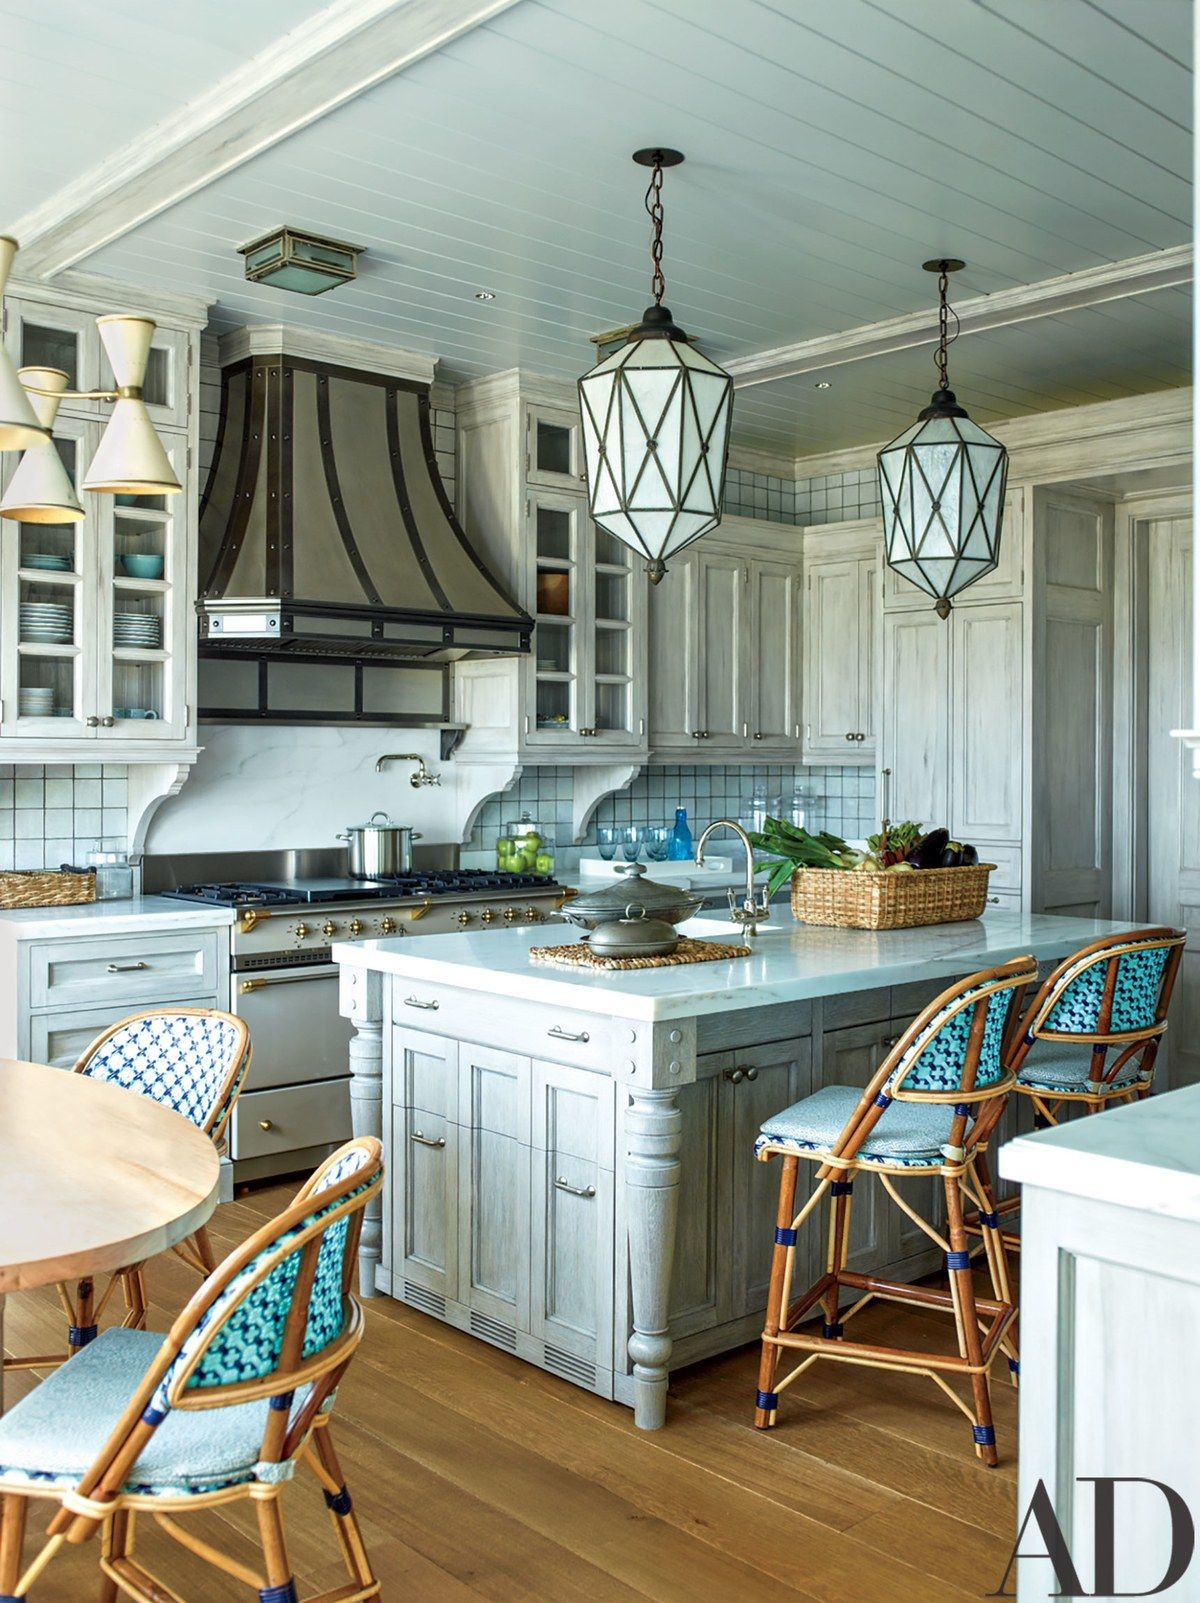 The kitchen is appointed with a RangeCraft hood, a Lacanche range ...